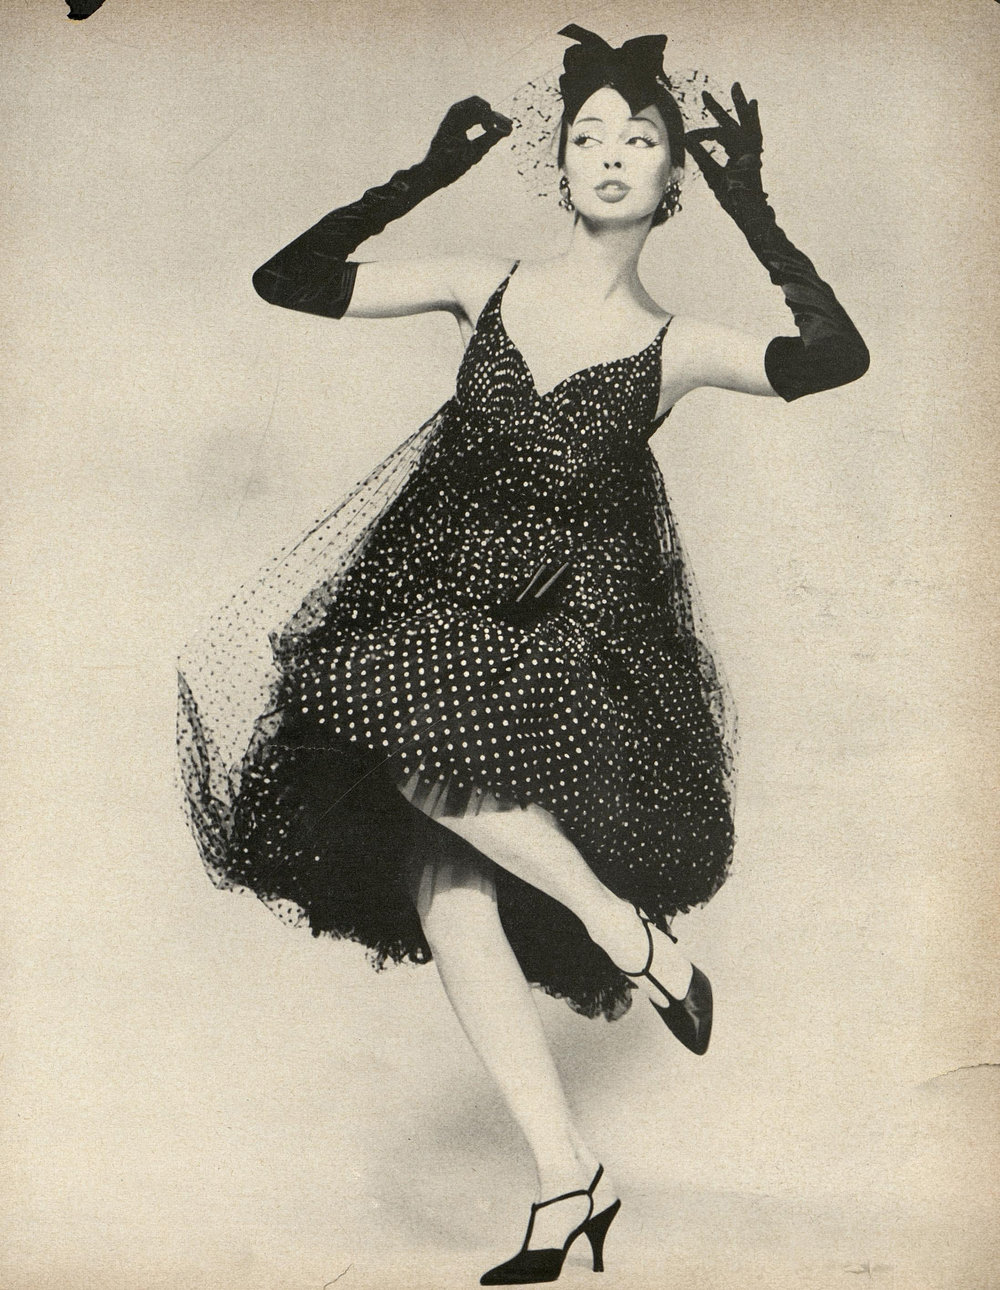 """This enchantment is made of coppery-dotted black point d'esprit, billowed from a point just below the bosom into a great, blown skirt that's caught above the knee with a satin bow, then released into a deep flounce."" Photographed by Richard Avedon for Harper's Bazaar, February 1958."